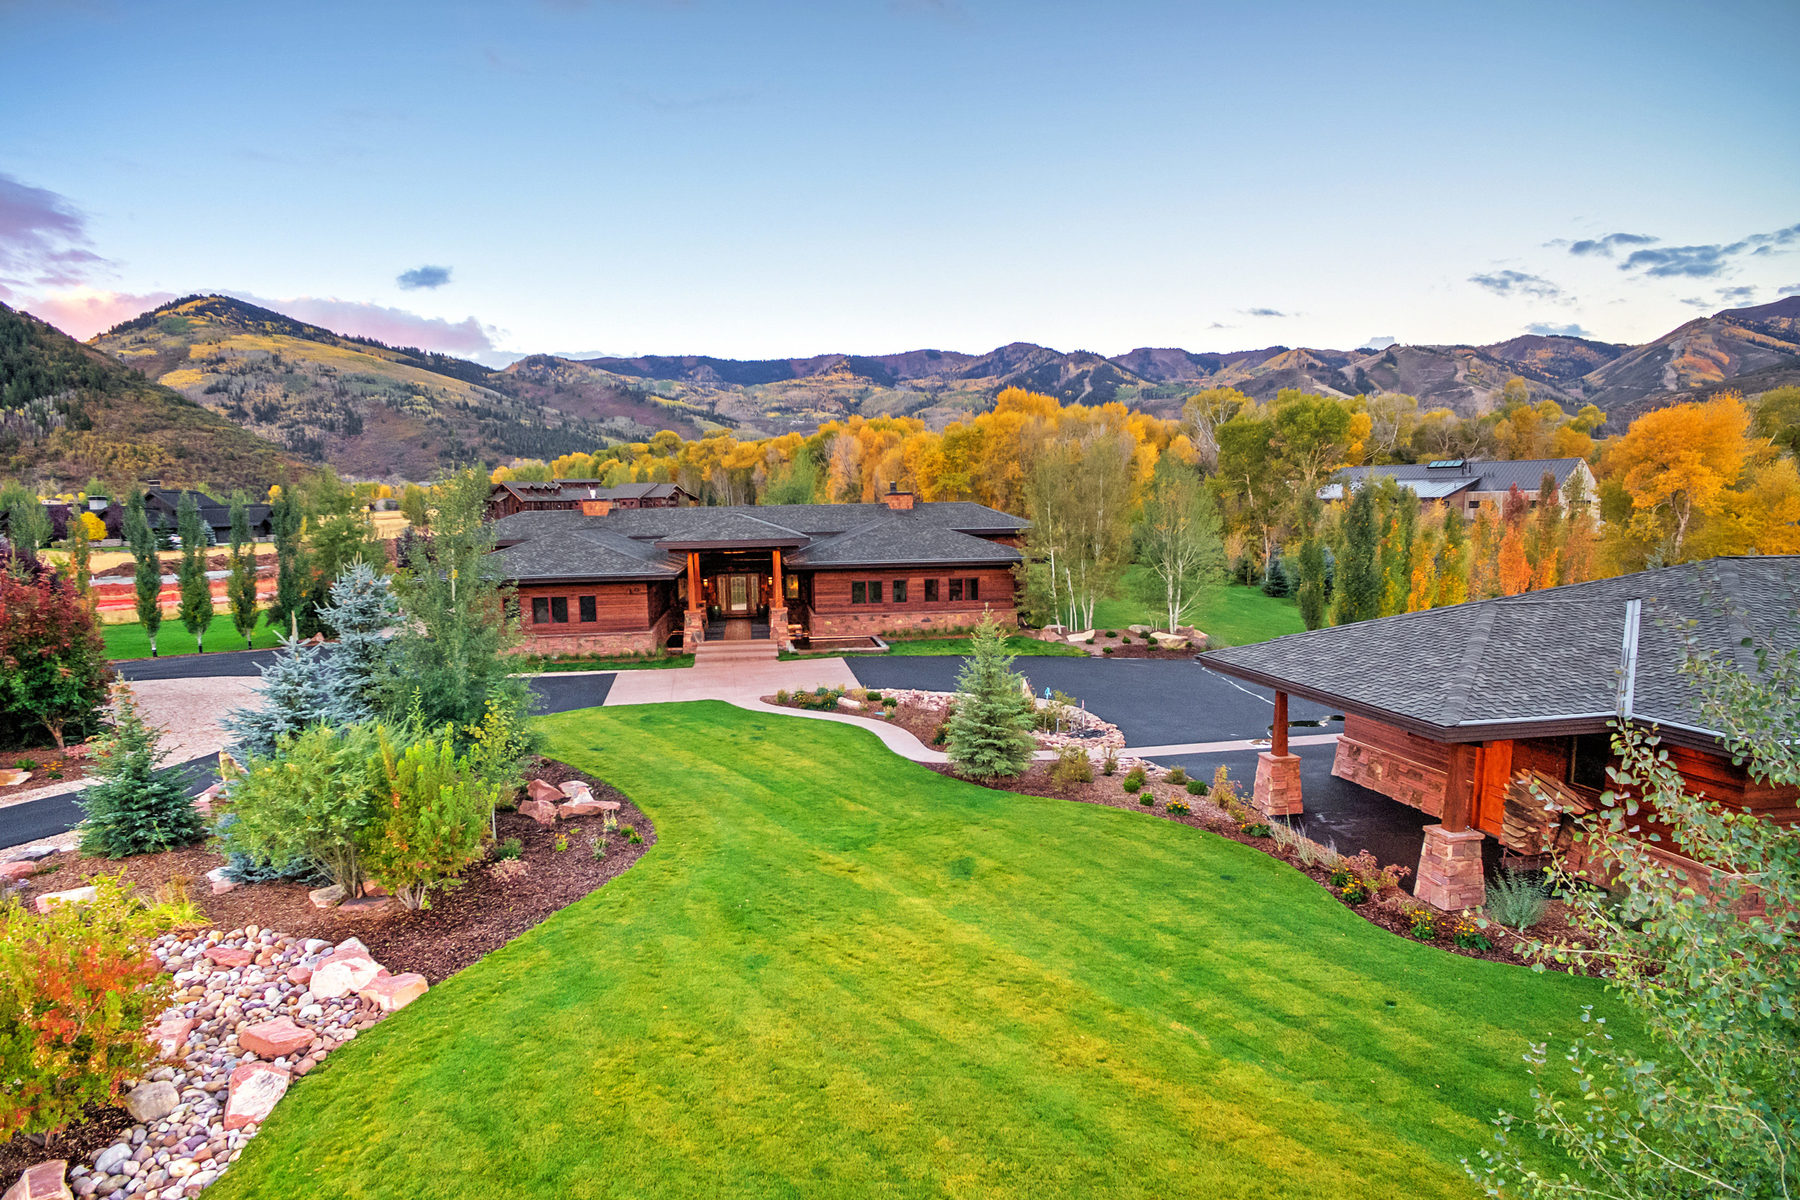 Casa para uma família para Venda às Old Ranch Road Sanctuary with Guest Home 4275 Quarry Mountain Rd Park City, Utah, 84098 Estados Unidos